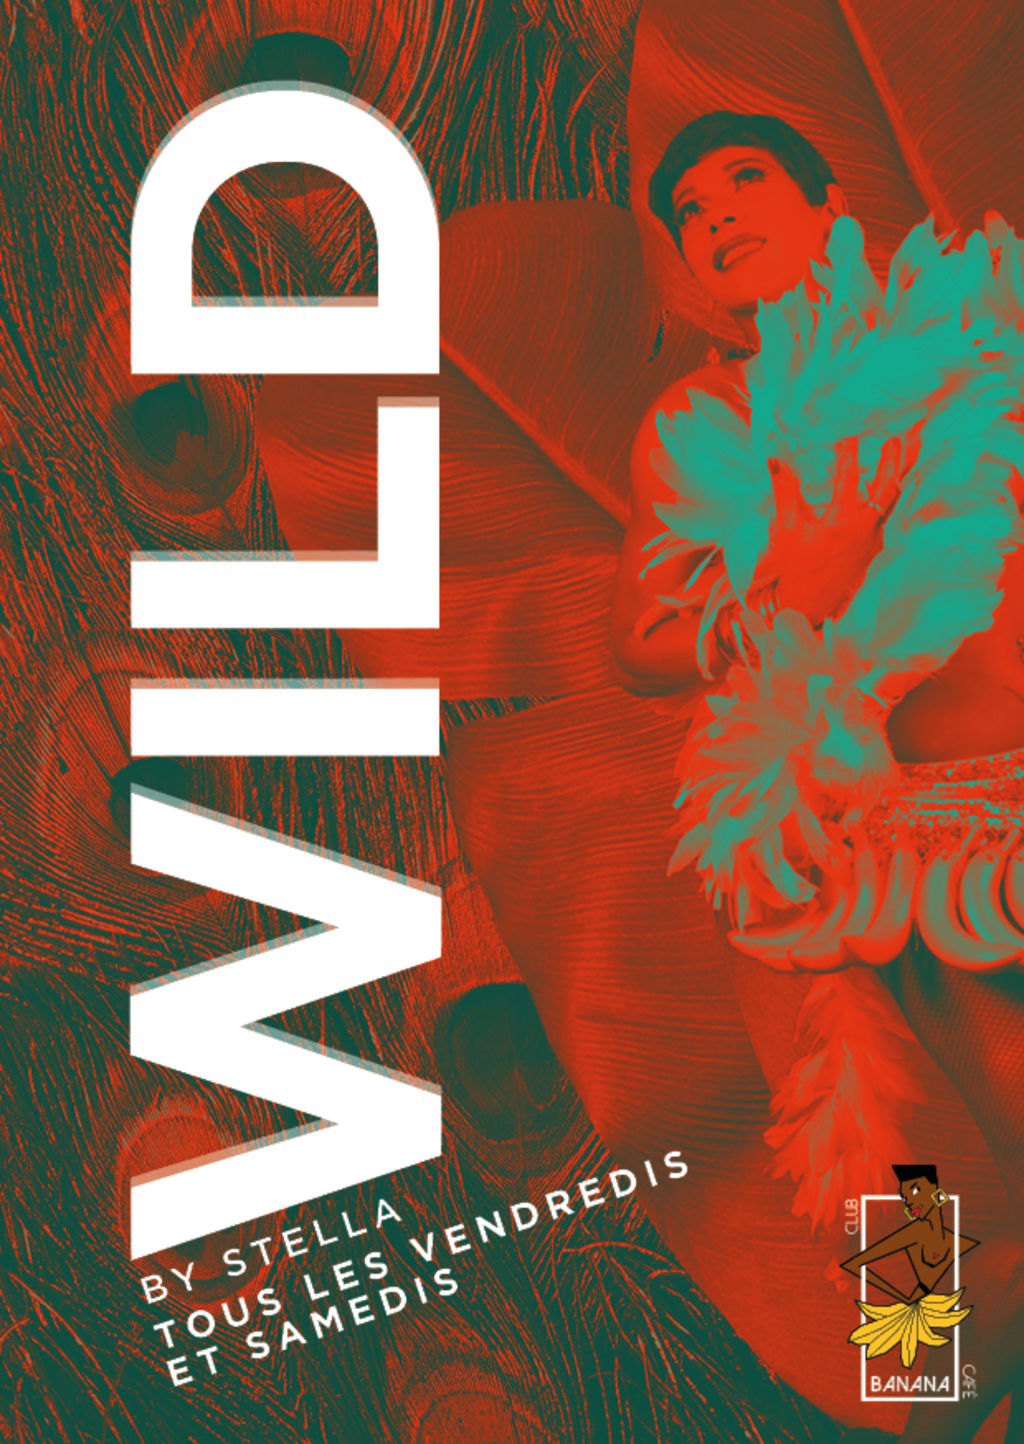 WILD - Every Fridays & Saturdays